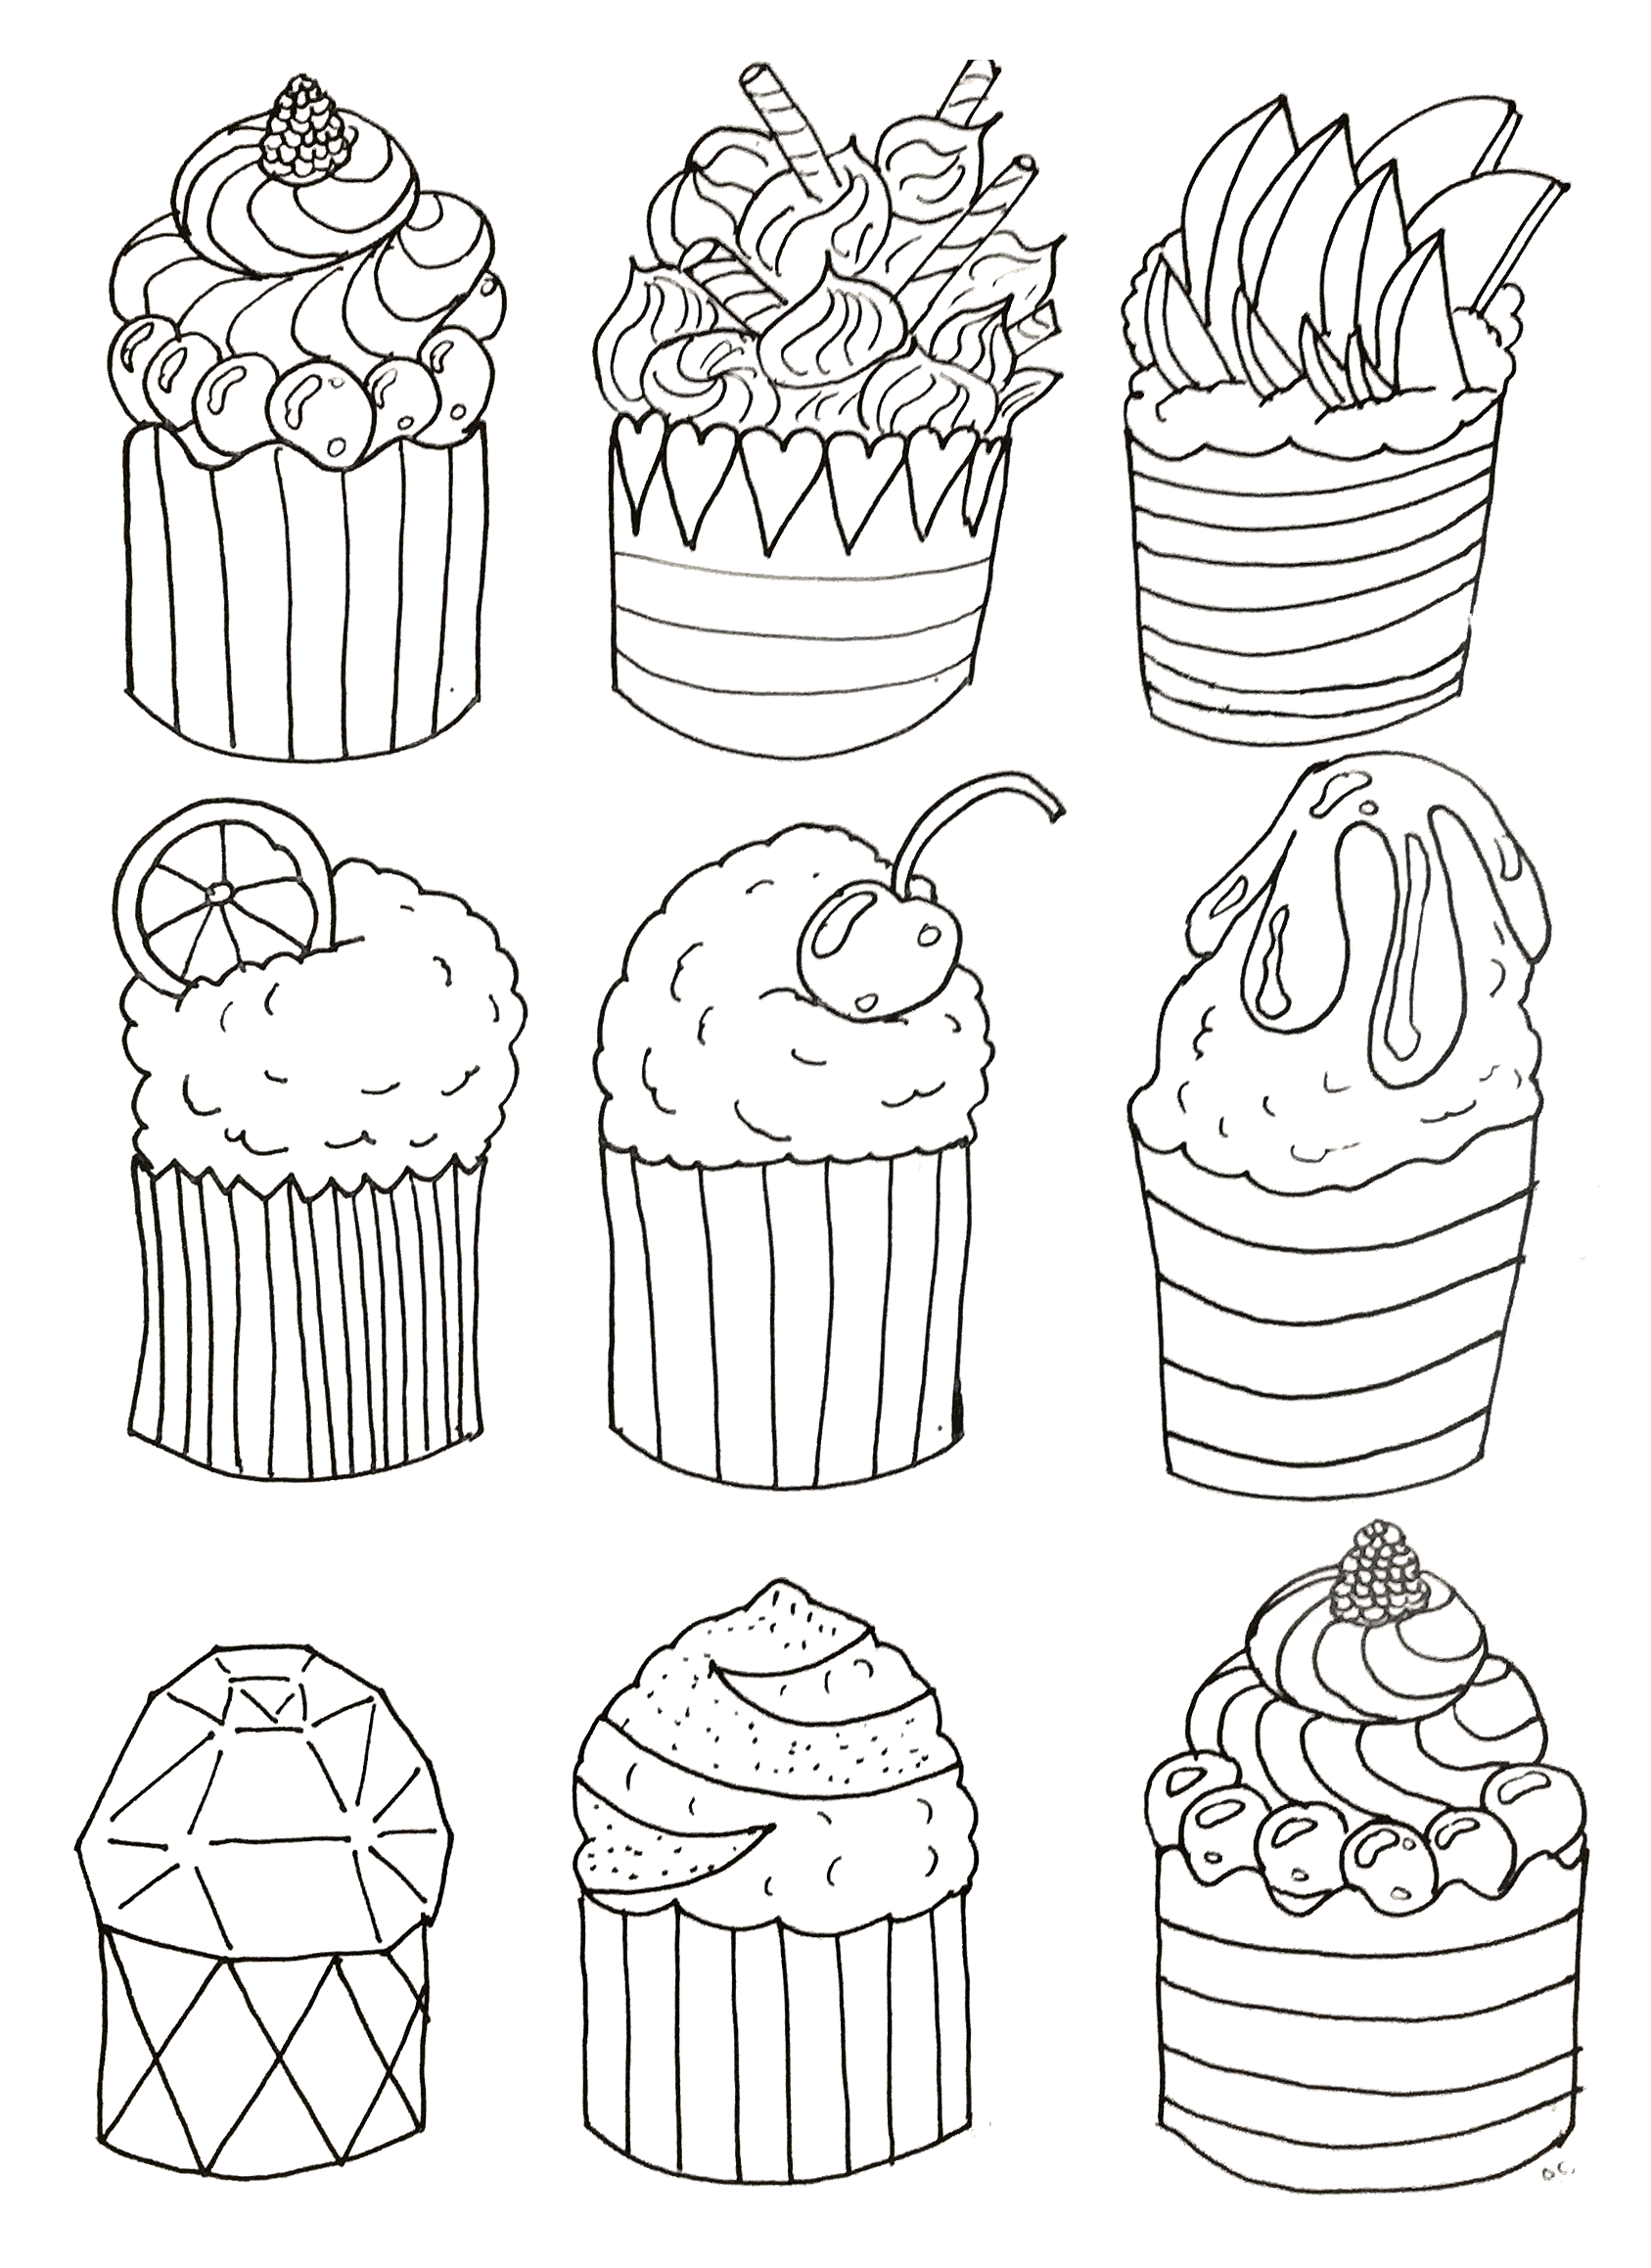 Simple Cupcakes Cupcakes And Cakes Coloring Pages For Adults